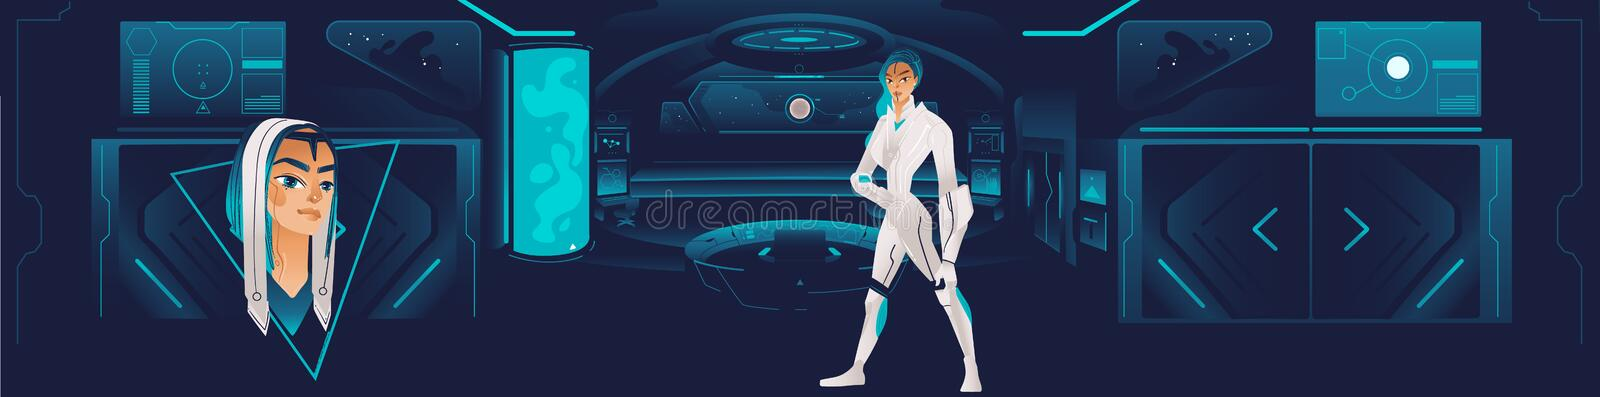 The interior of the spaceship with a futuristic girl or a woman from the crew. stock illustration